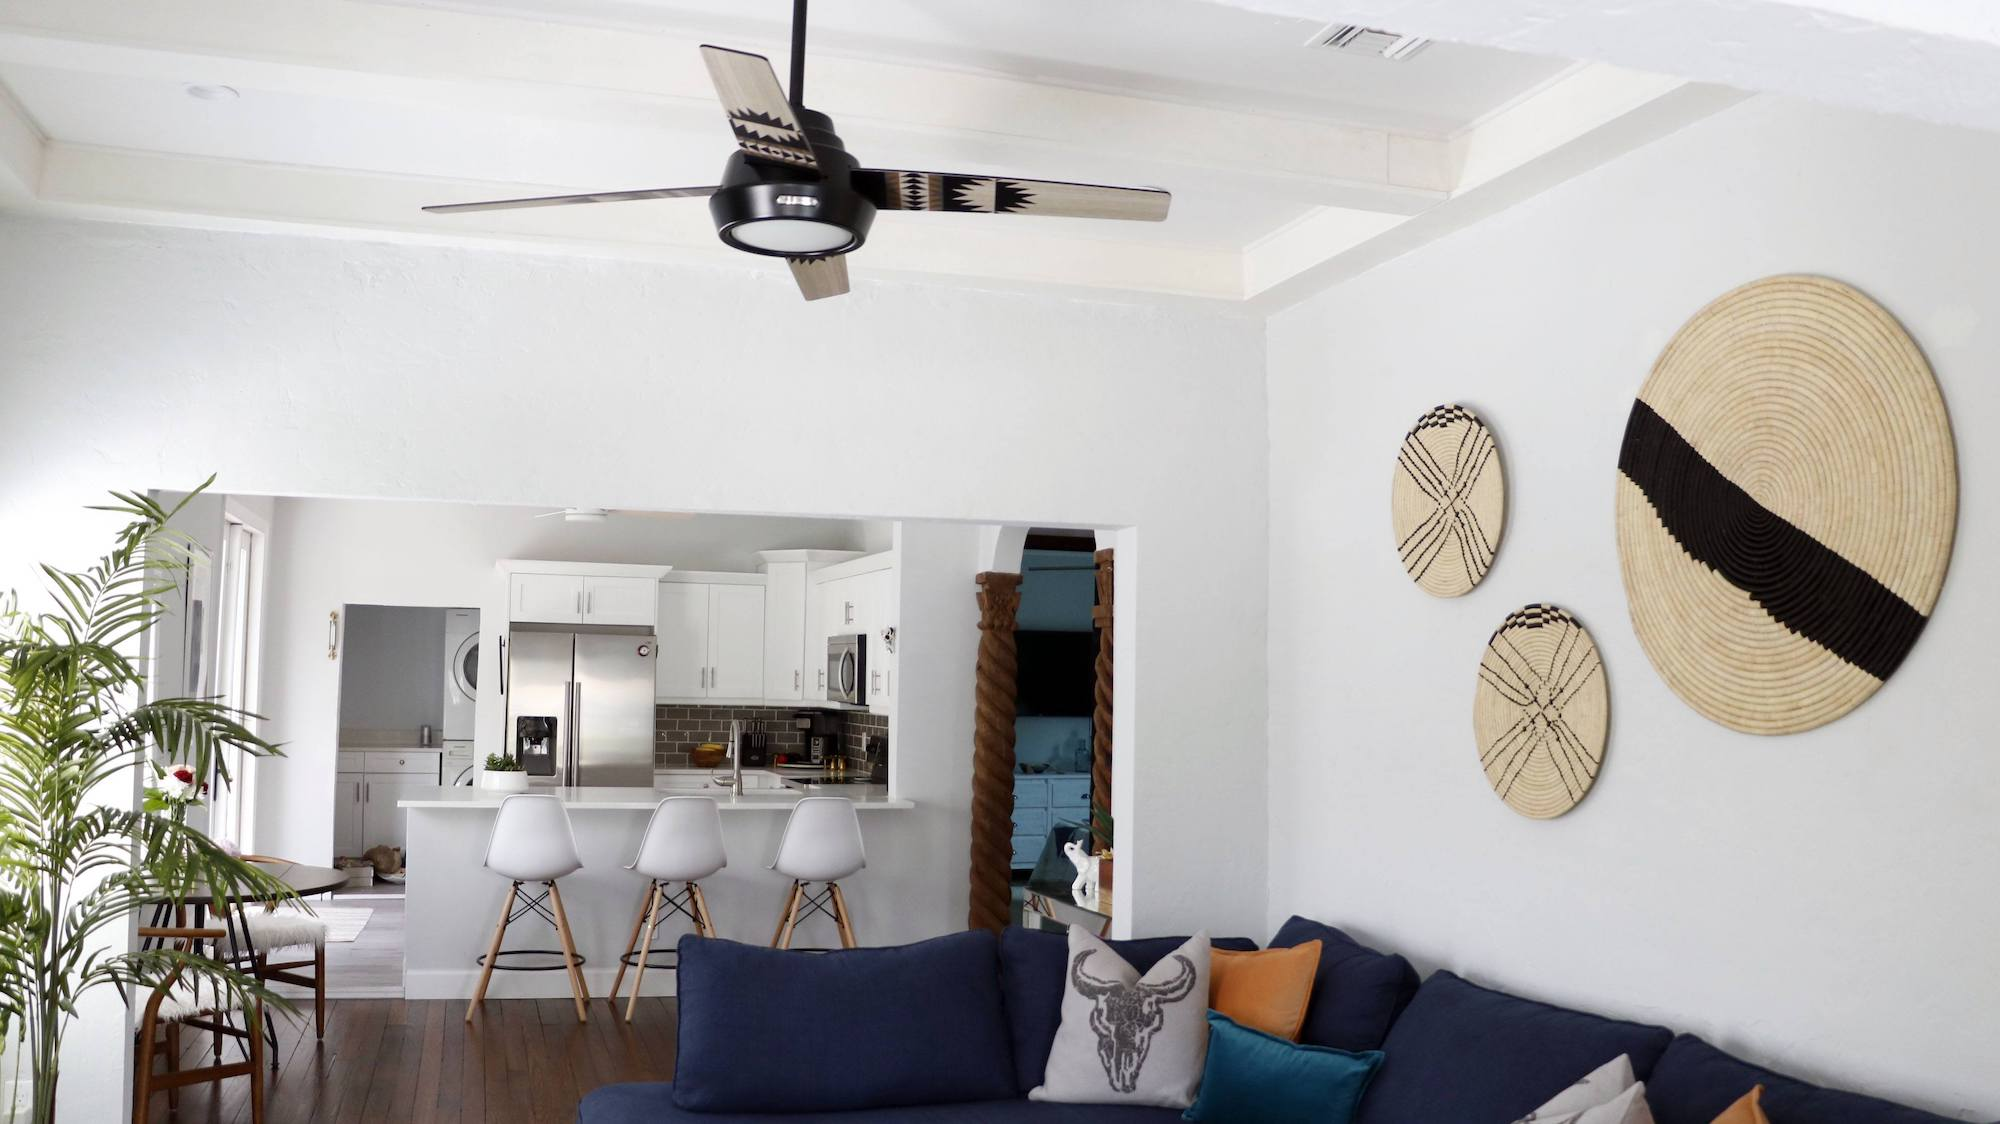 Huntervention Palm Springs AirBnB with Hunter x Pendleton Spider Rock modern Southwestern ceiling fan